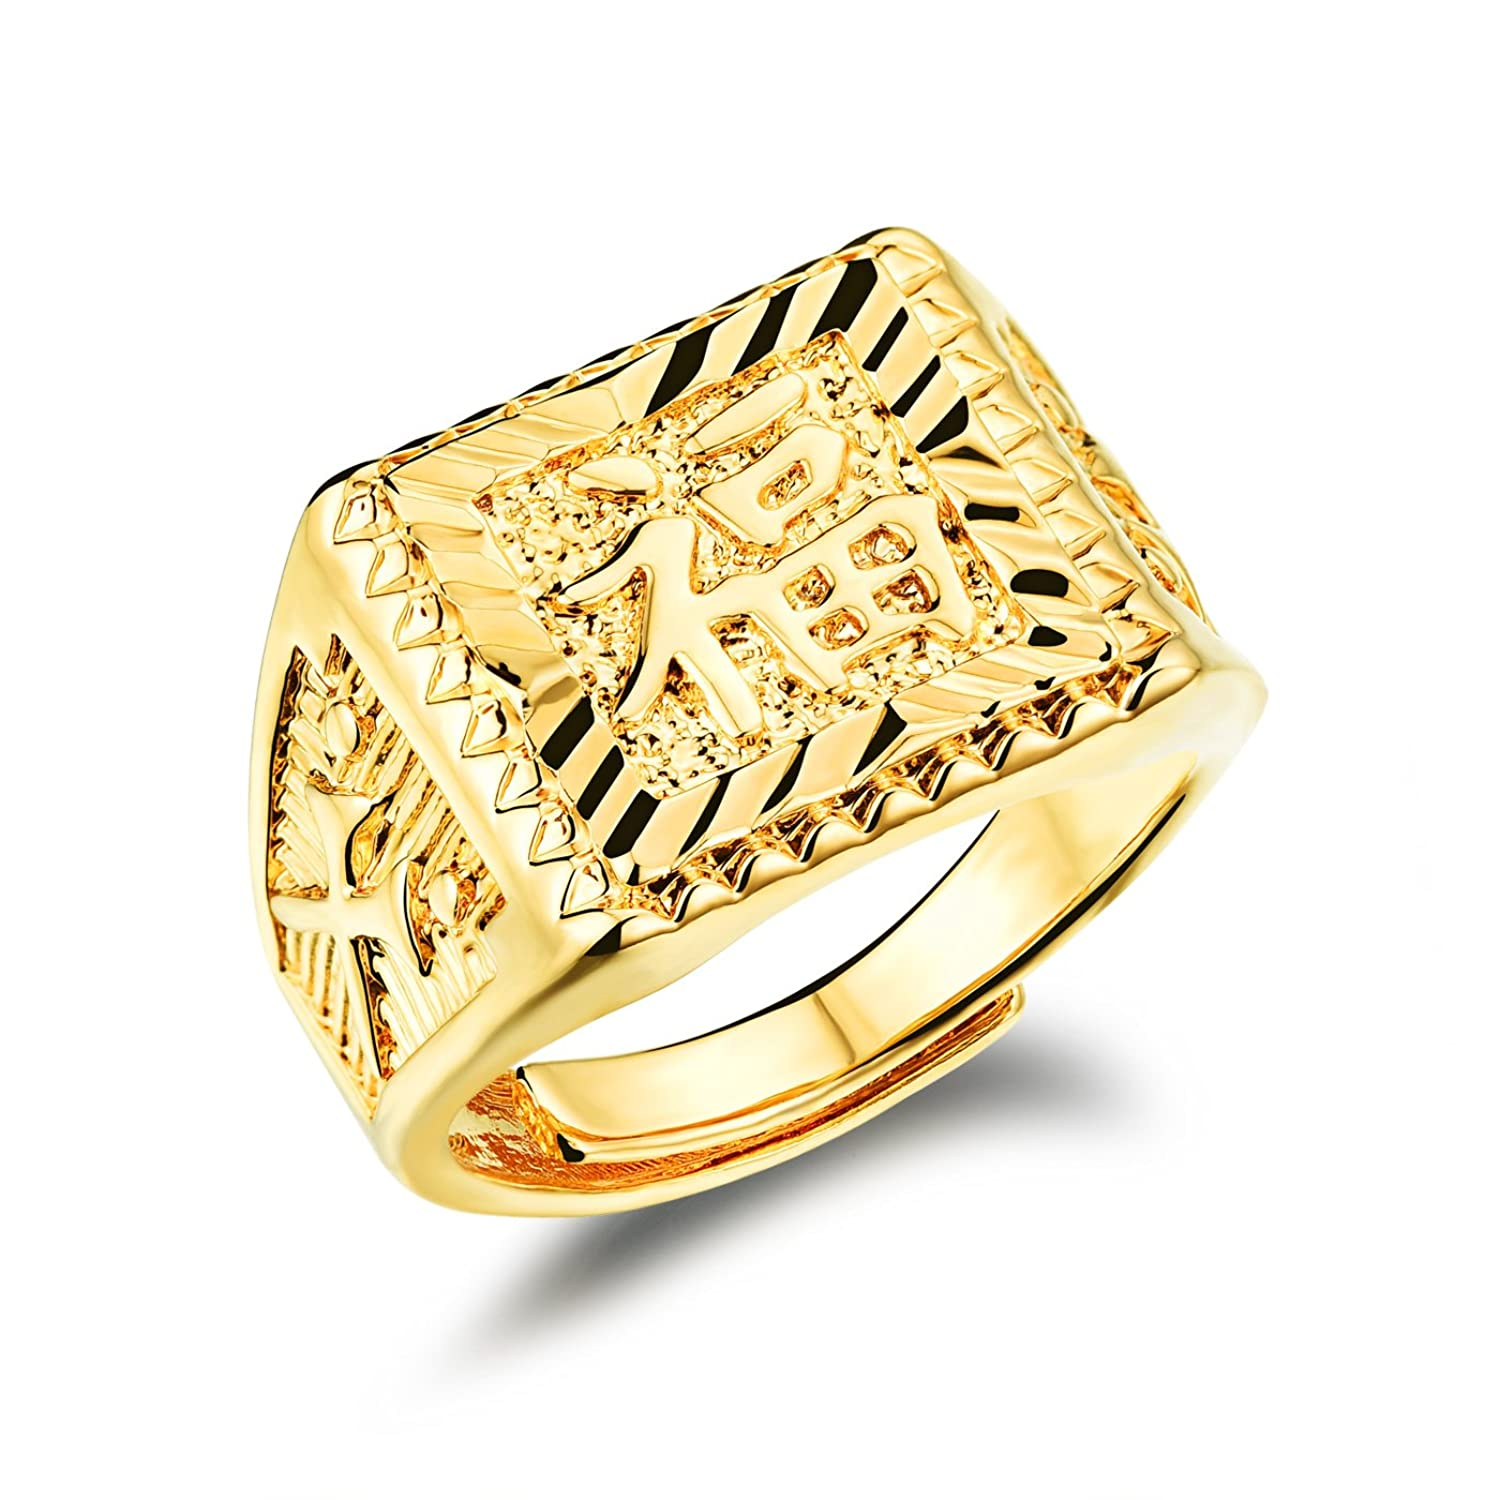 amazon ngtl ring com finger dp lion men epinki jewellery for gold s head plated